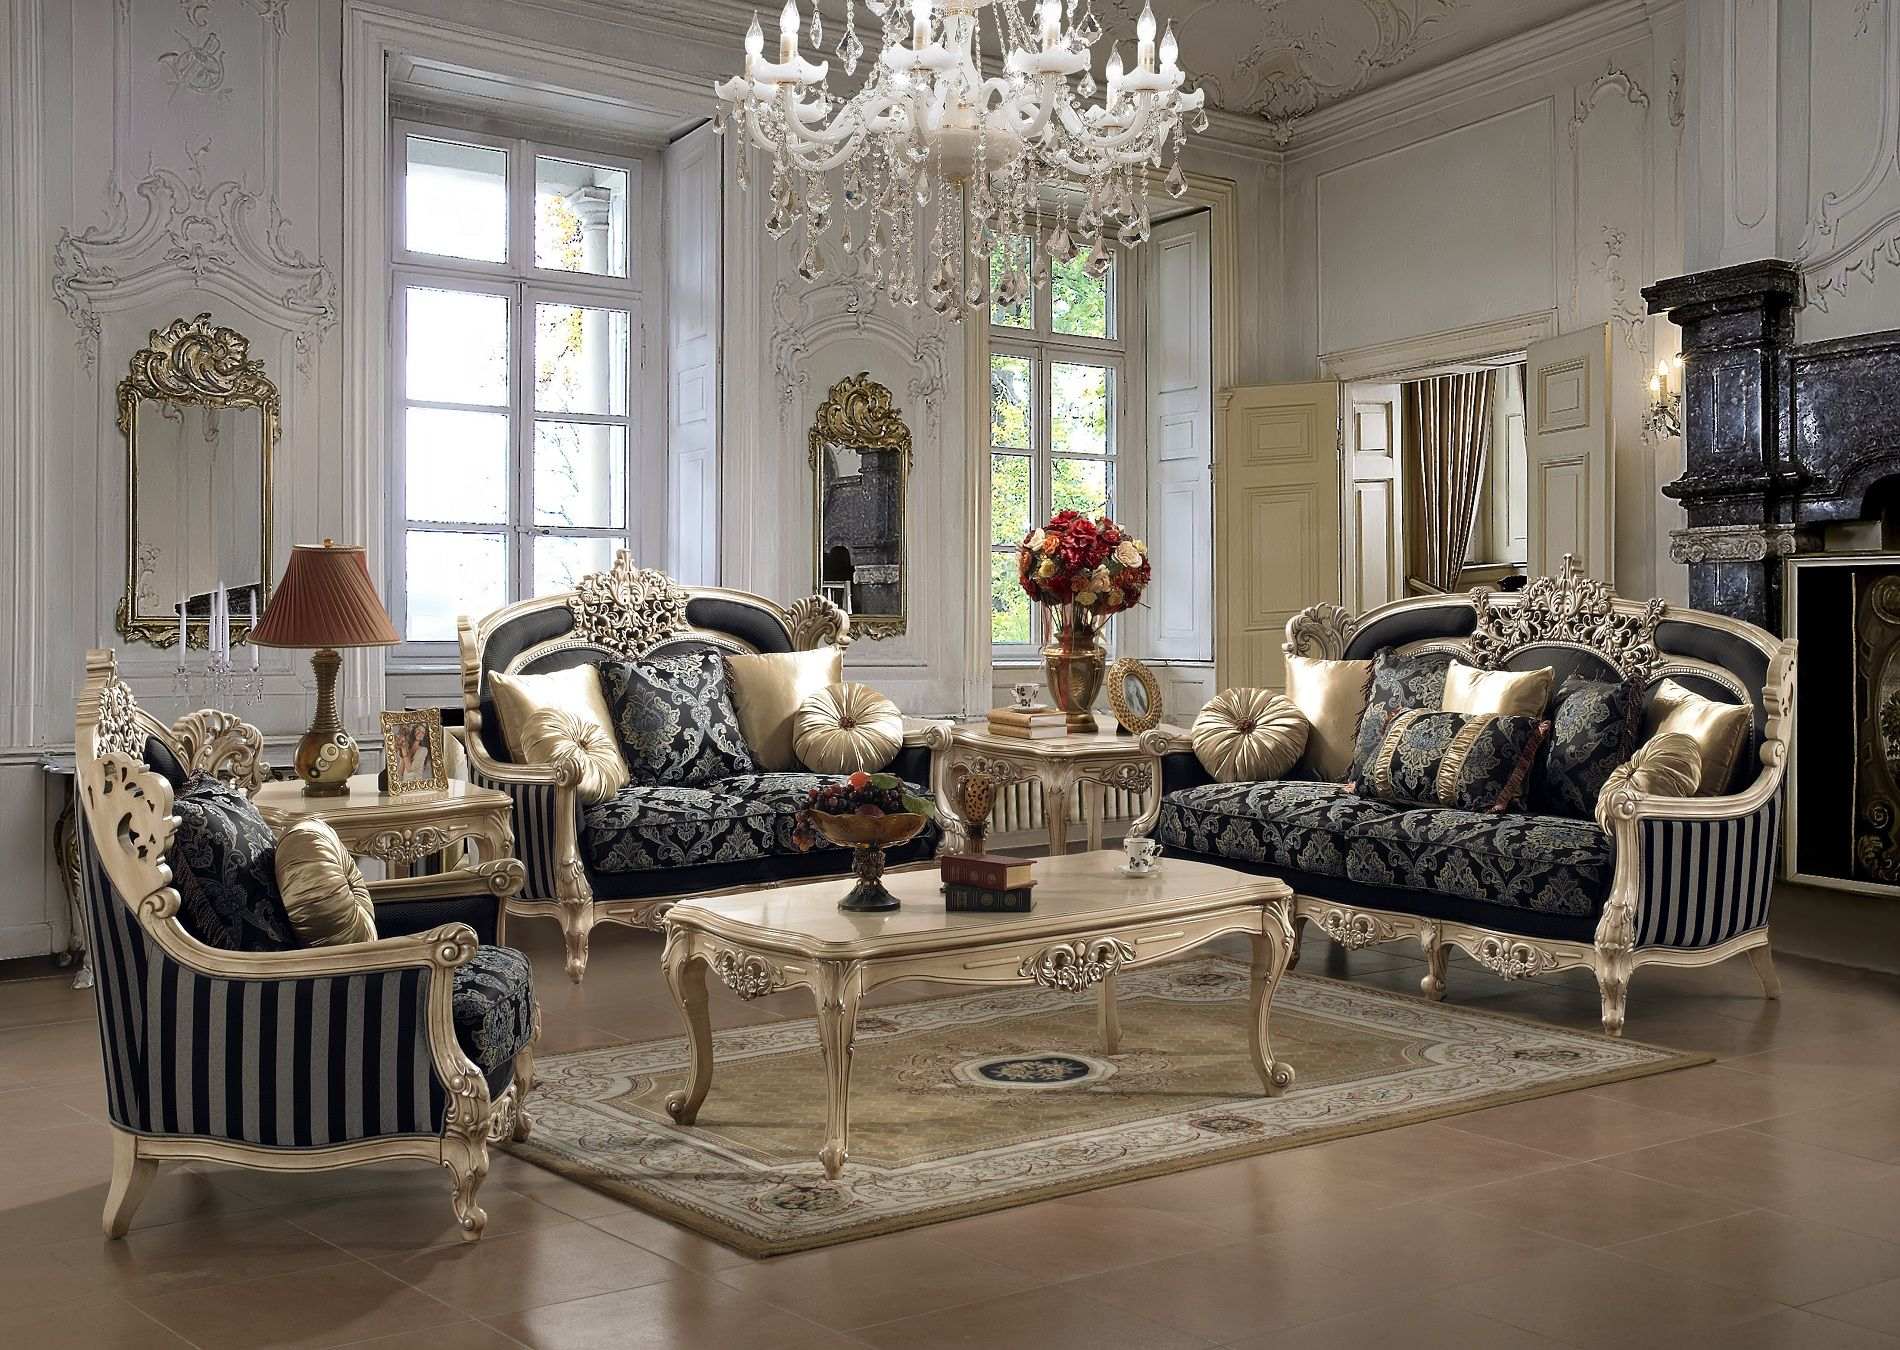 luxurious living room furniture. Royal style 3 Piece Living Room sofa Set with Accent Pillows